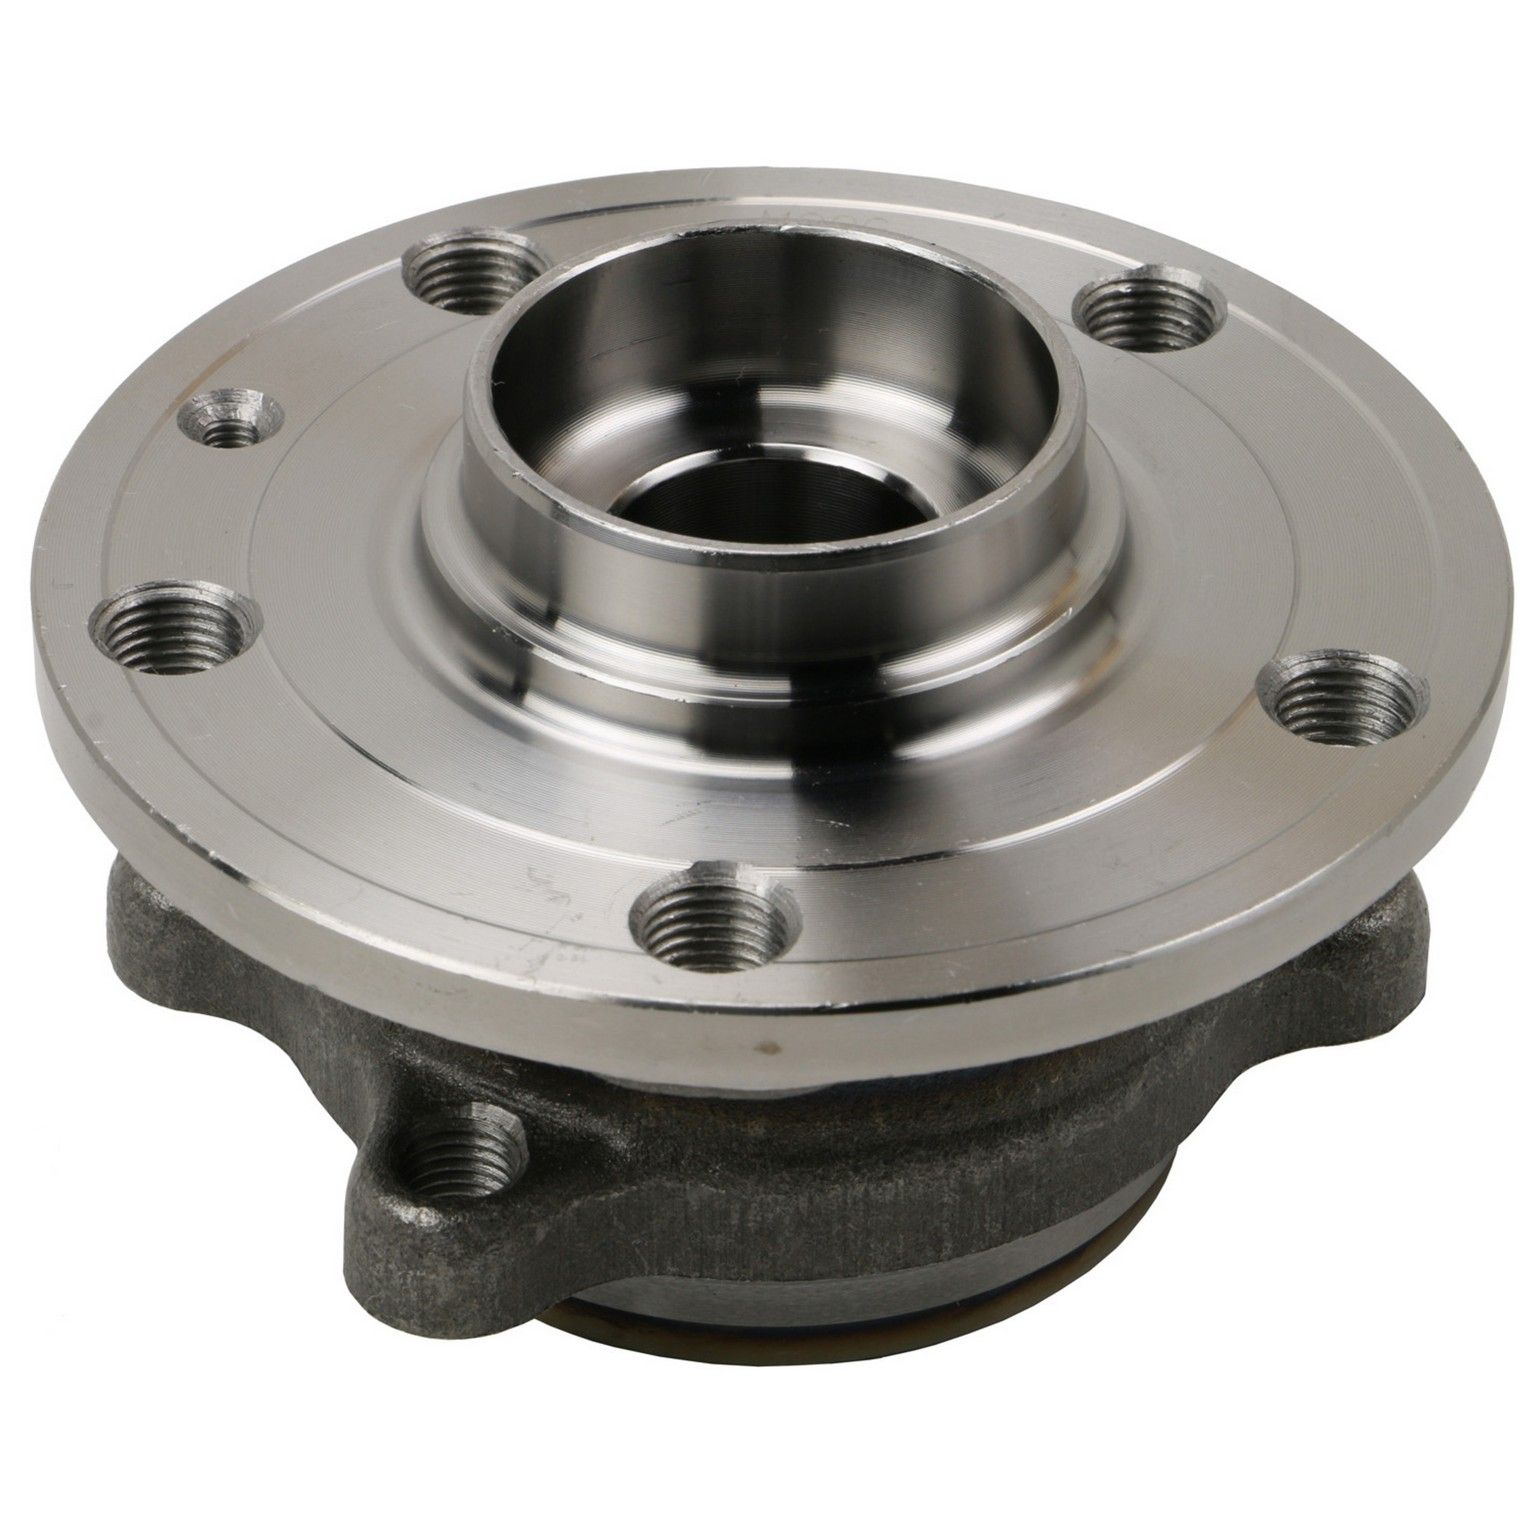 Volkswagen Passat Wheel Bearing and Hub Assembly Replacement